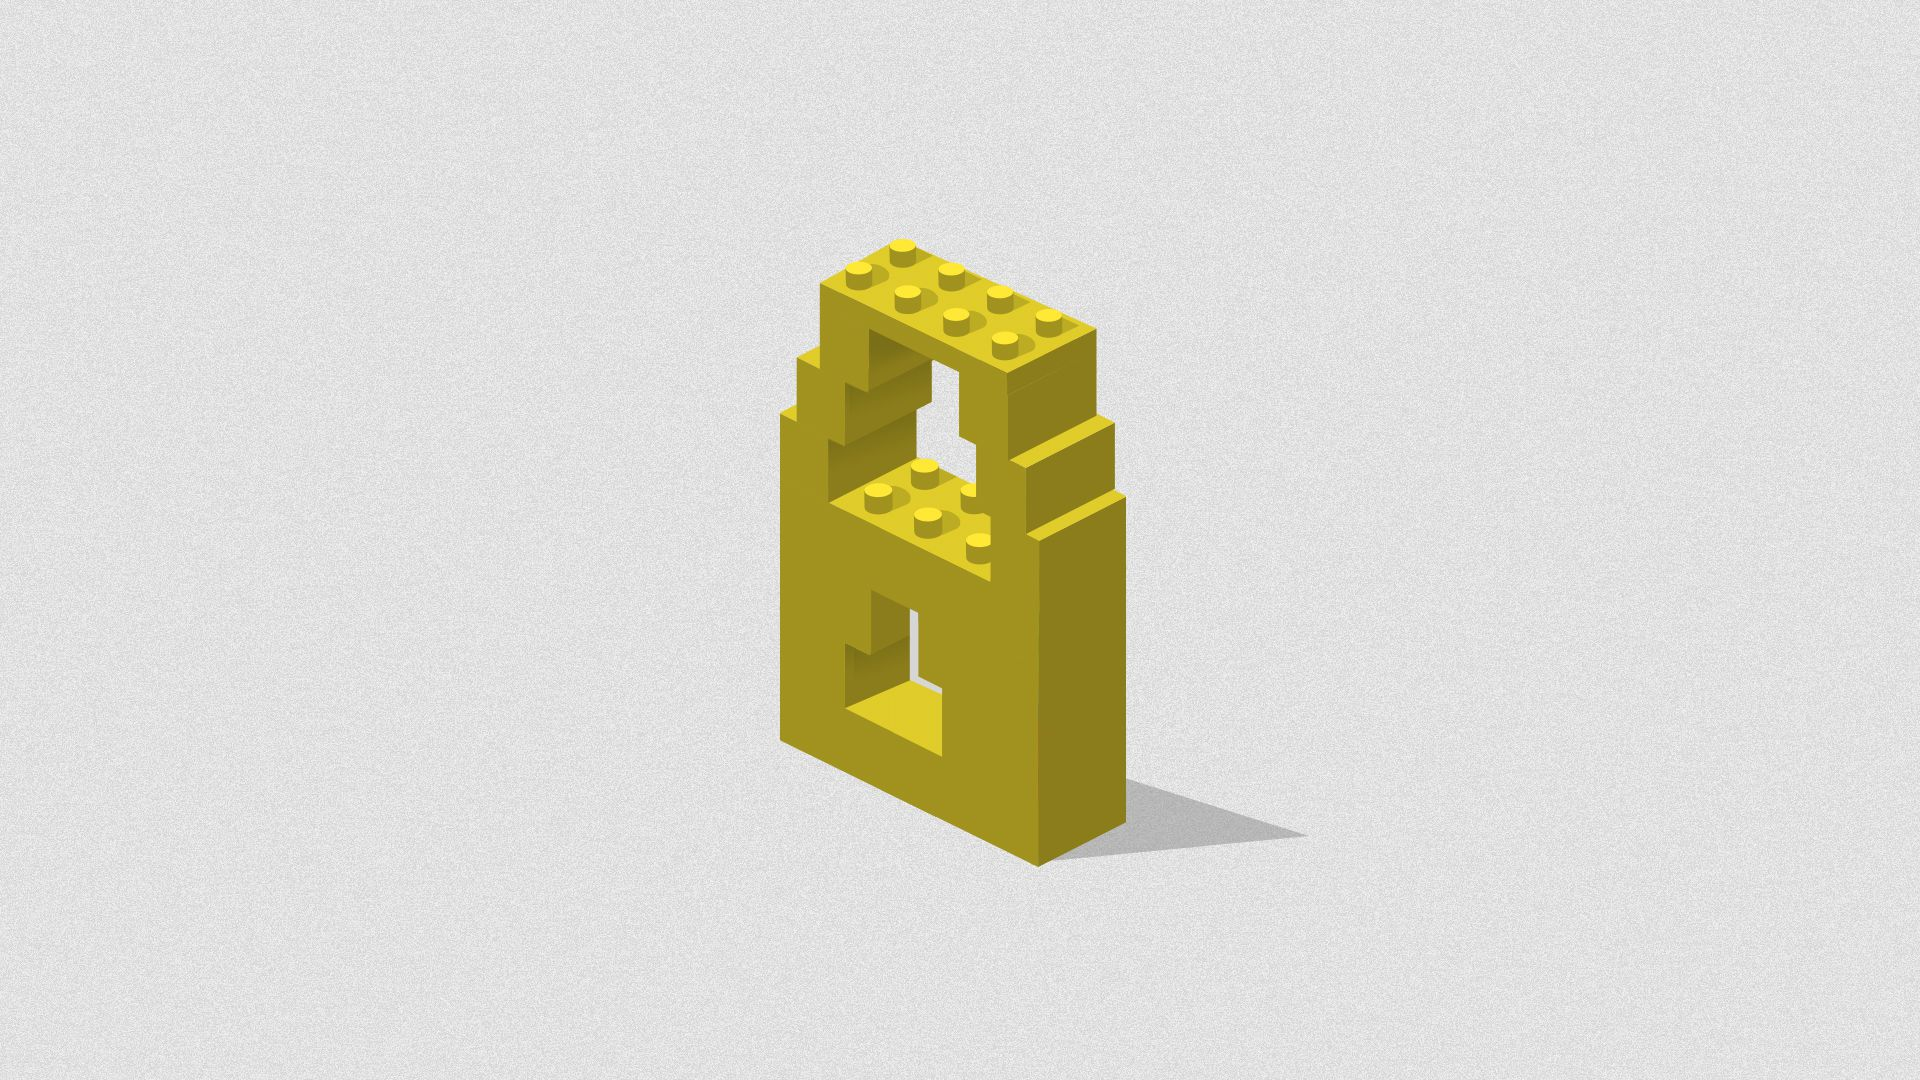 Illustration of a security lock made out of legos.